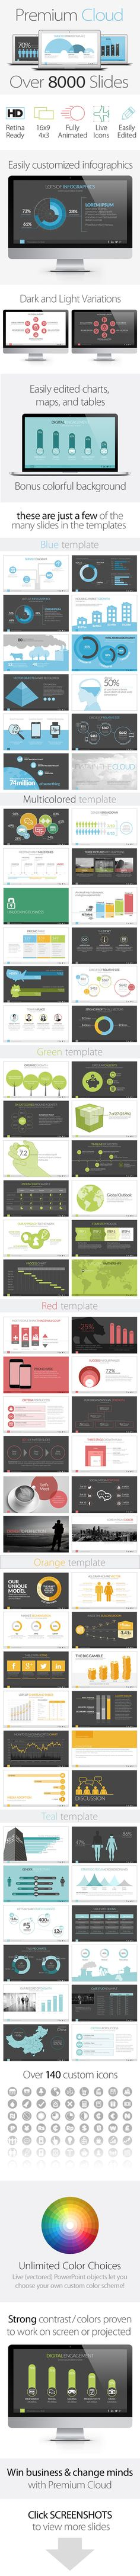 Introducing Premium Cloud  Sleek, uncluttered templates loaded with charts, graphs, maps and infographics. Templates ideal for social media, non-profit, tech, advertising, new media, web or mobile, venture capital, creative, or general business. Created with full vector objects to allow for easy recoloring and rebranding.